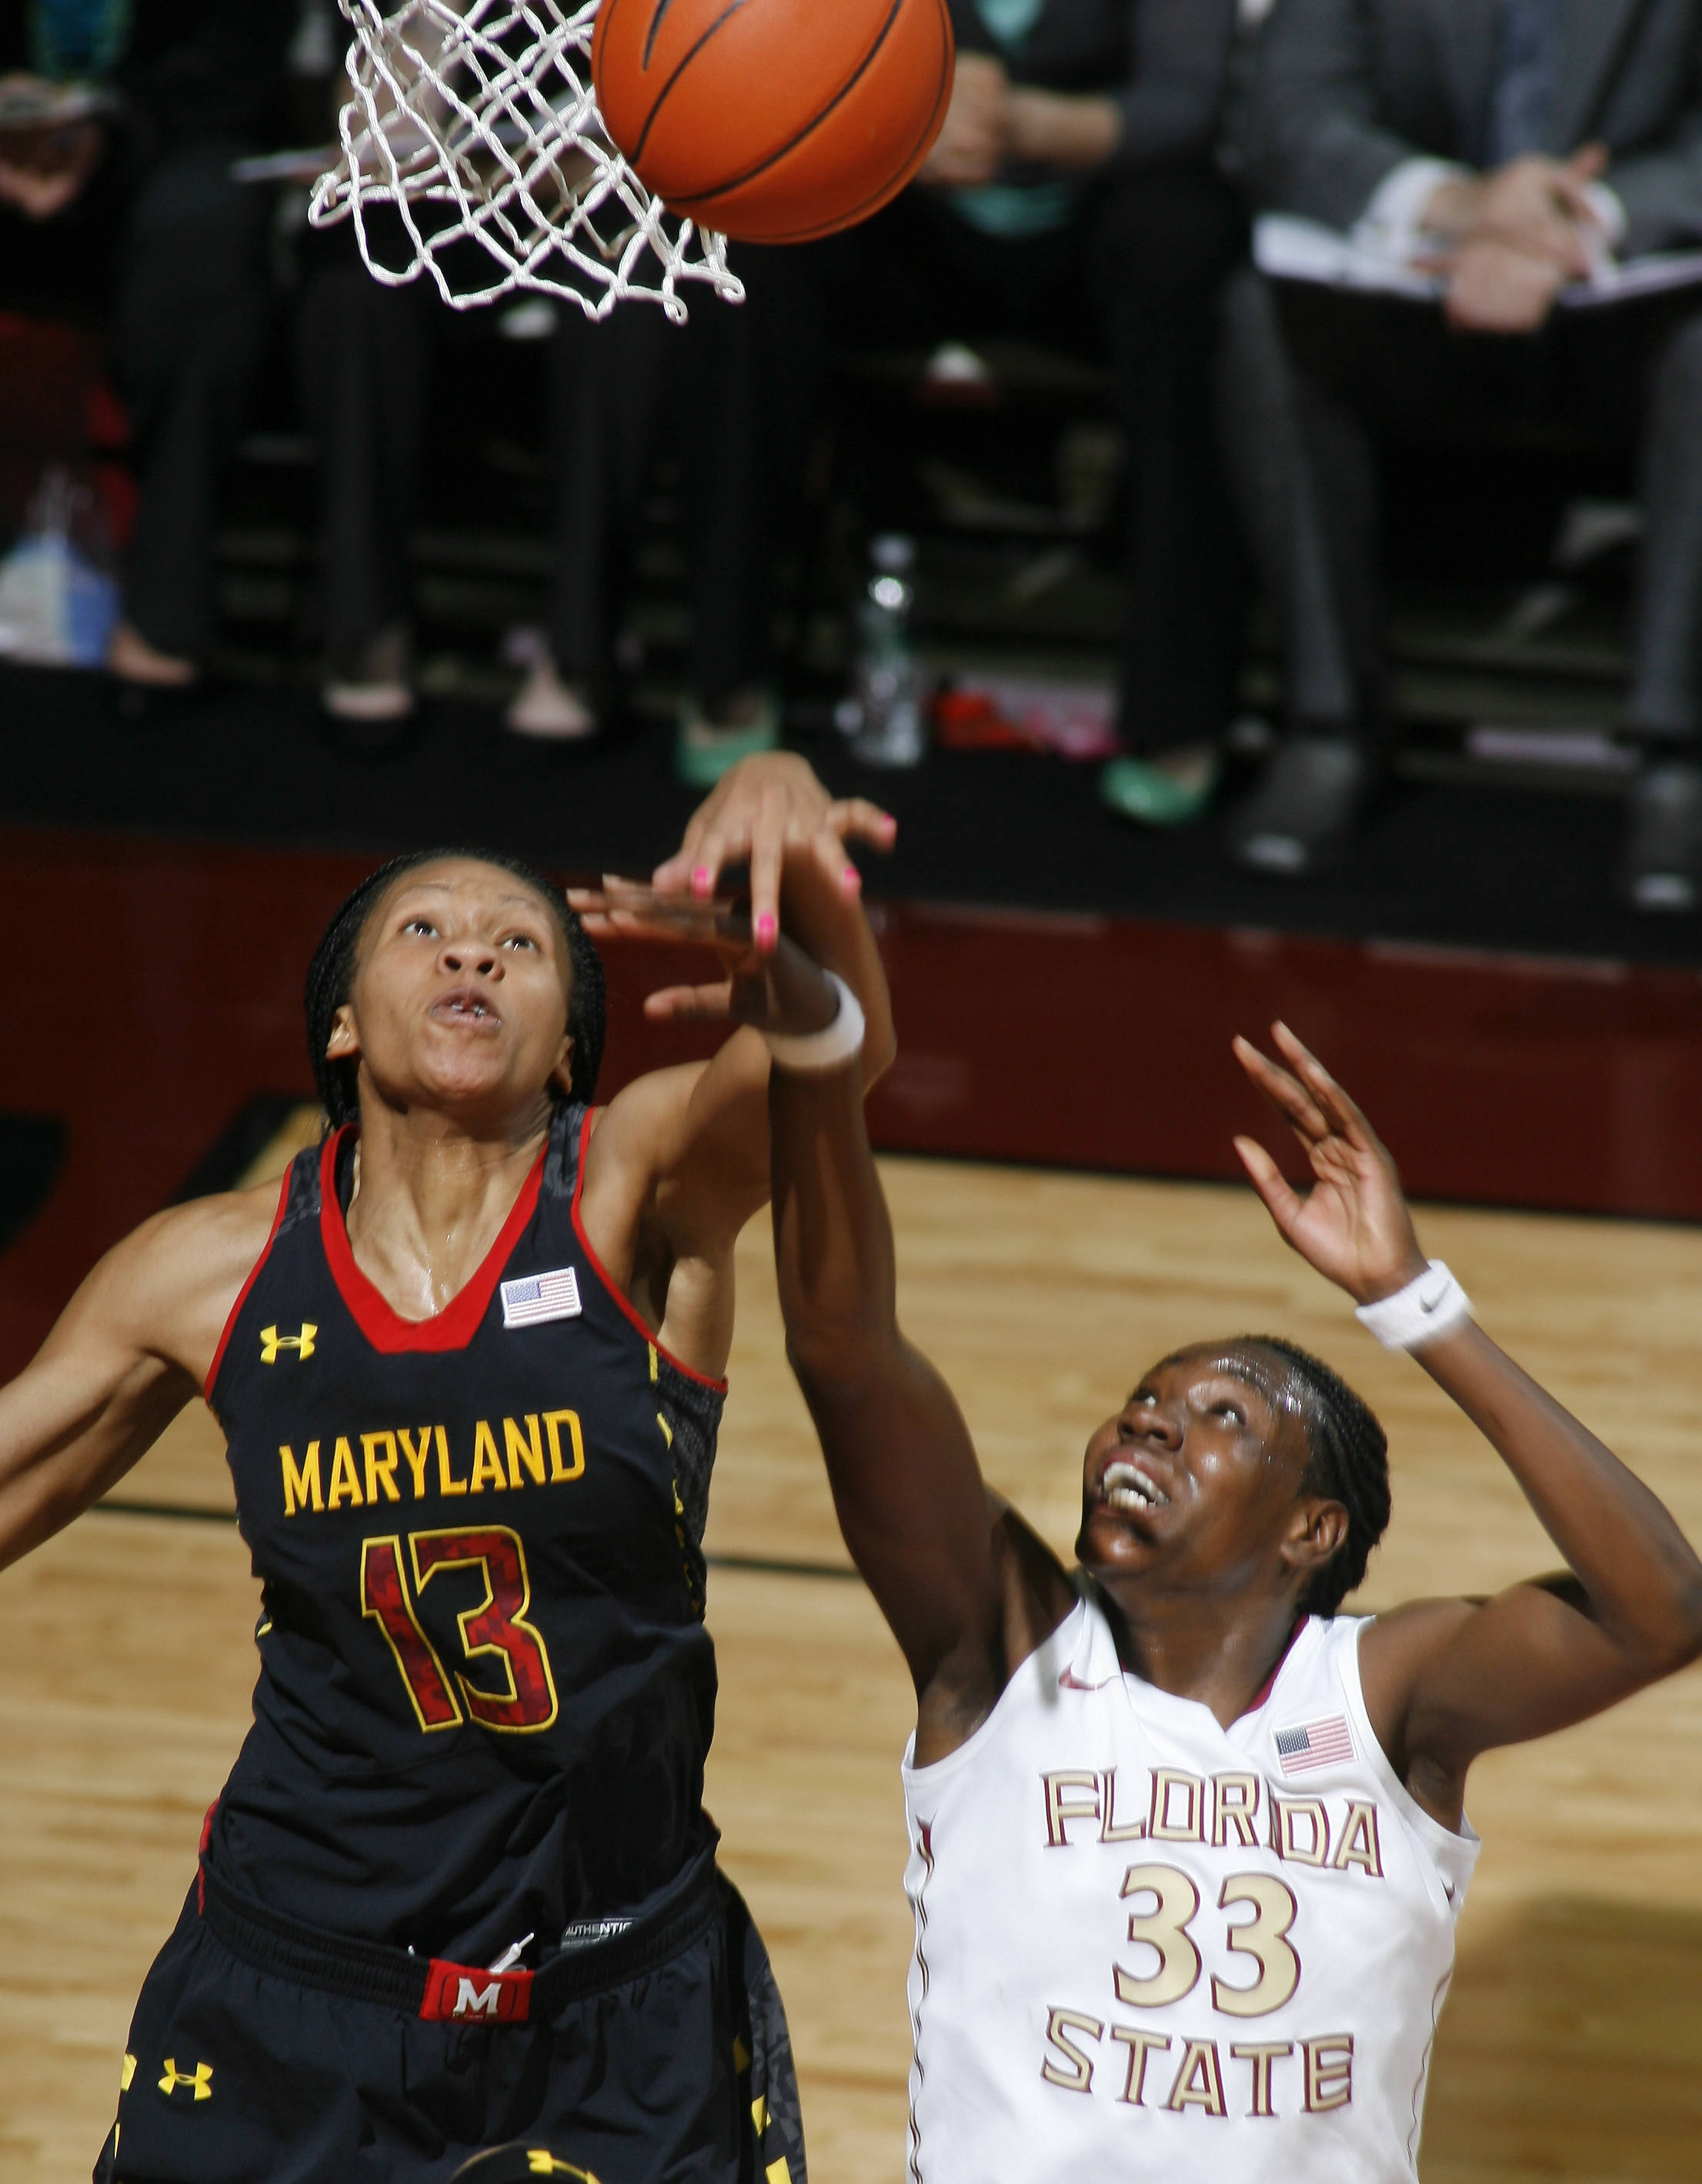 Maryland center Alicia DeVaughn (13) fouls Florida State forward Natasha Howard (33) on a layup-attempt in the first half. (AP Photo/Phil Sears)